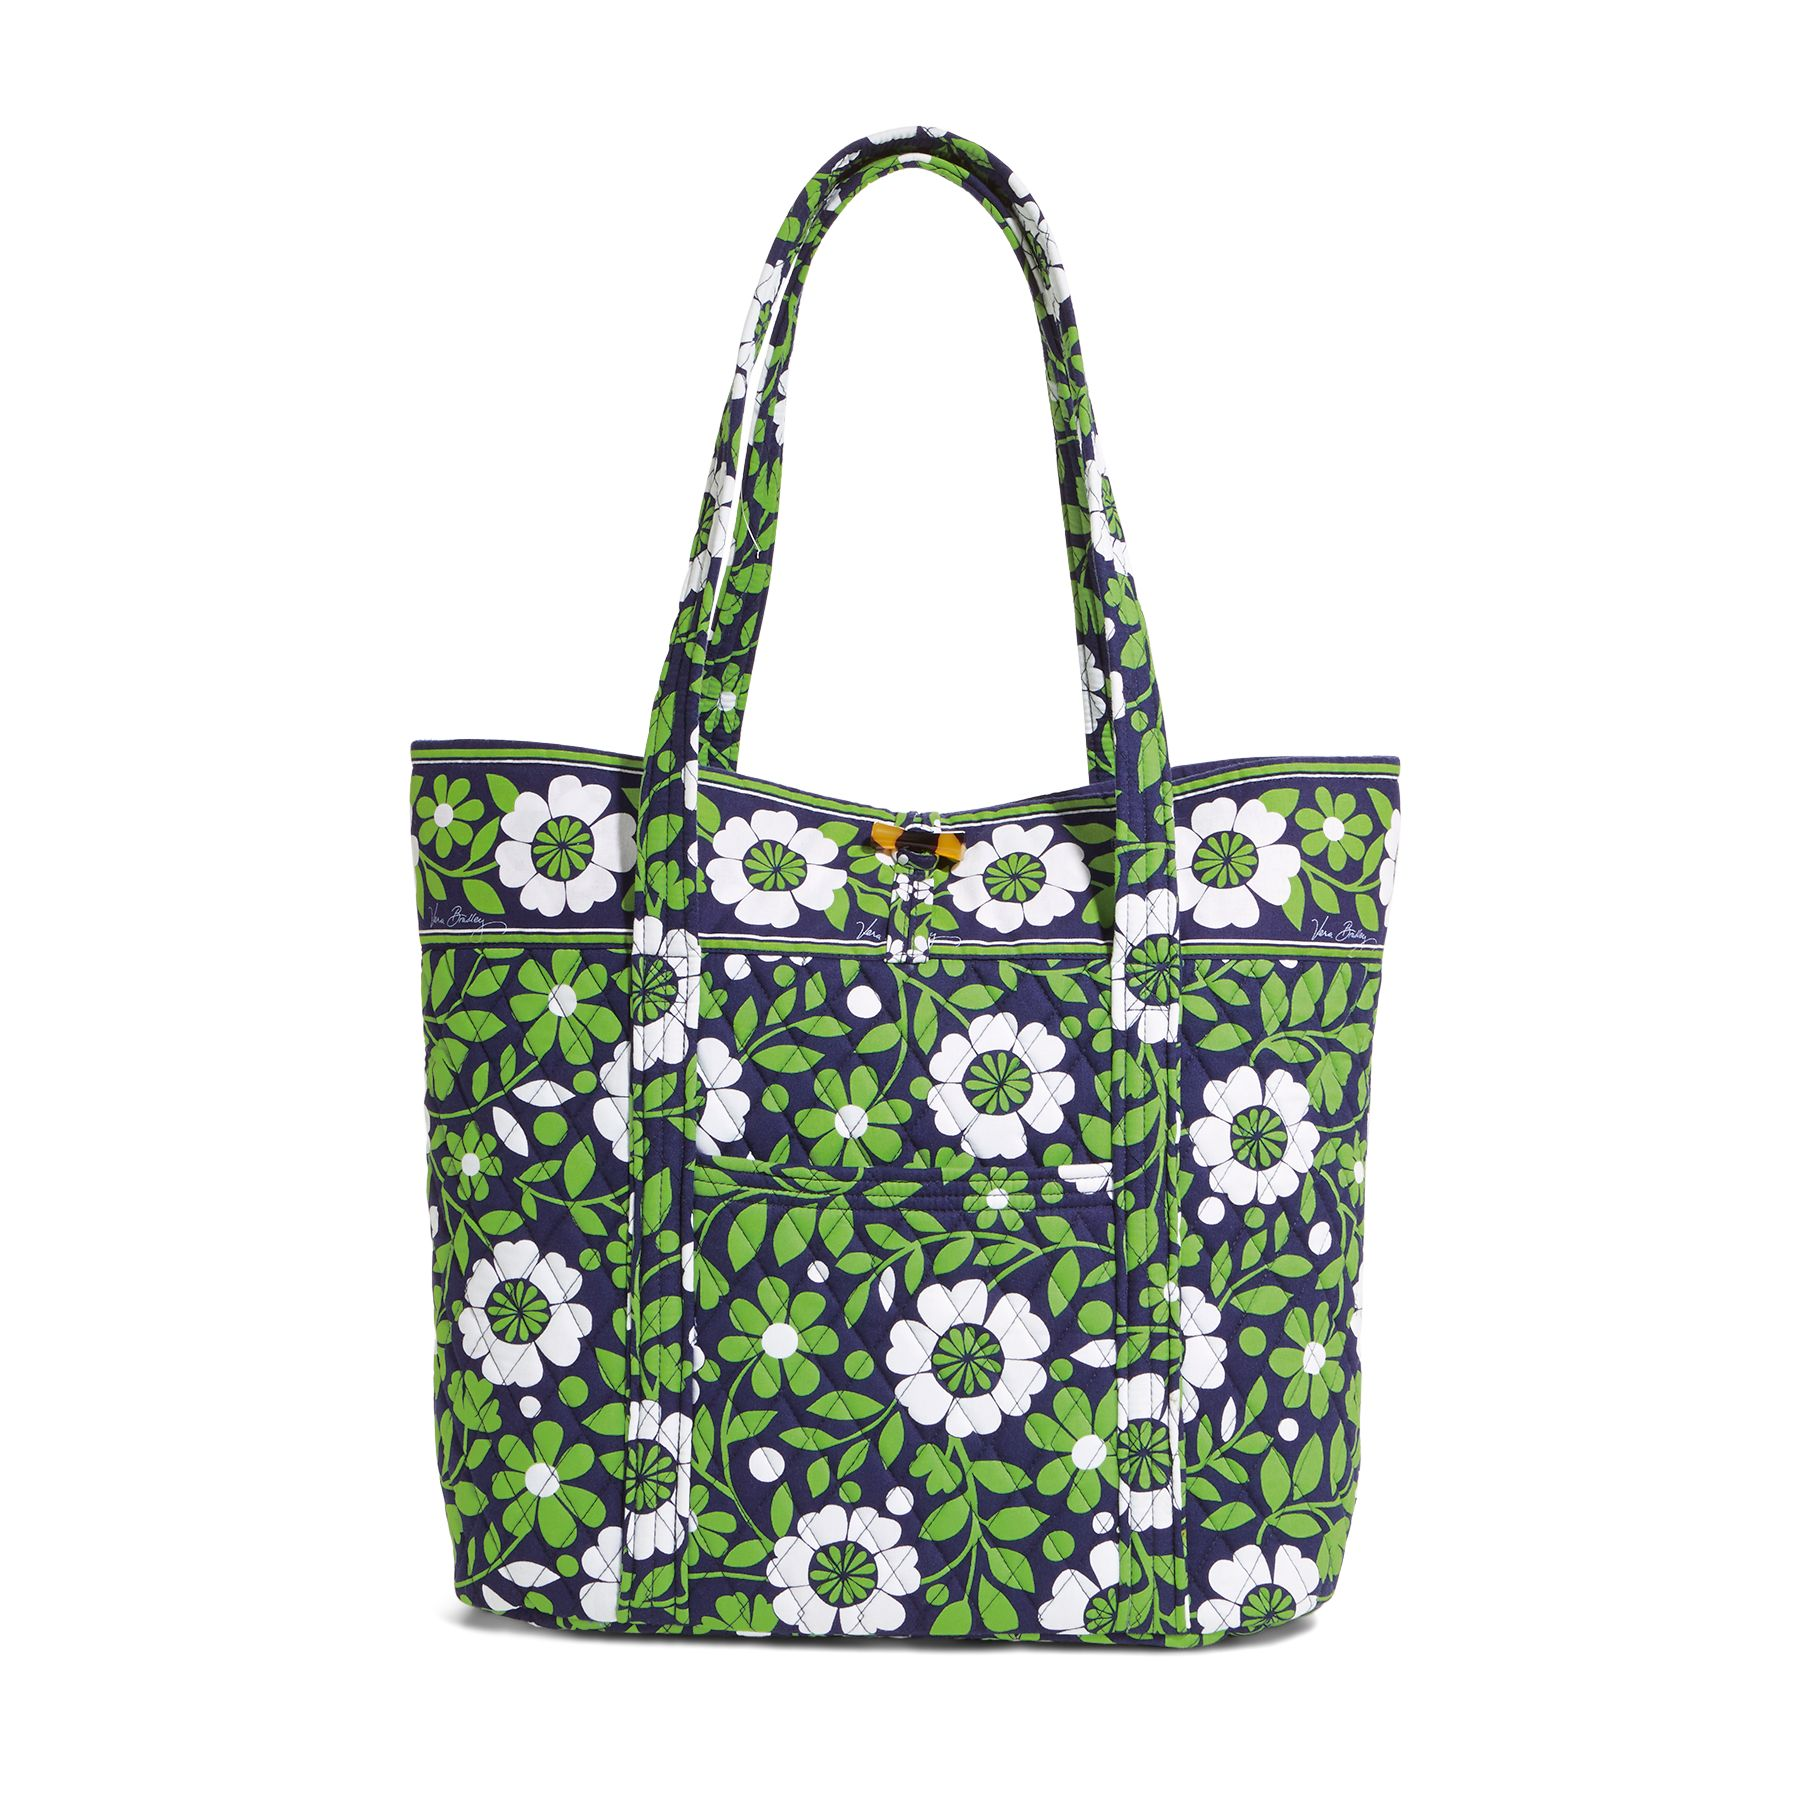 Vera Bradley Travel Tote Bag